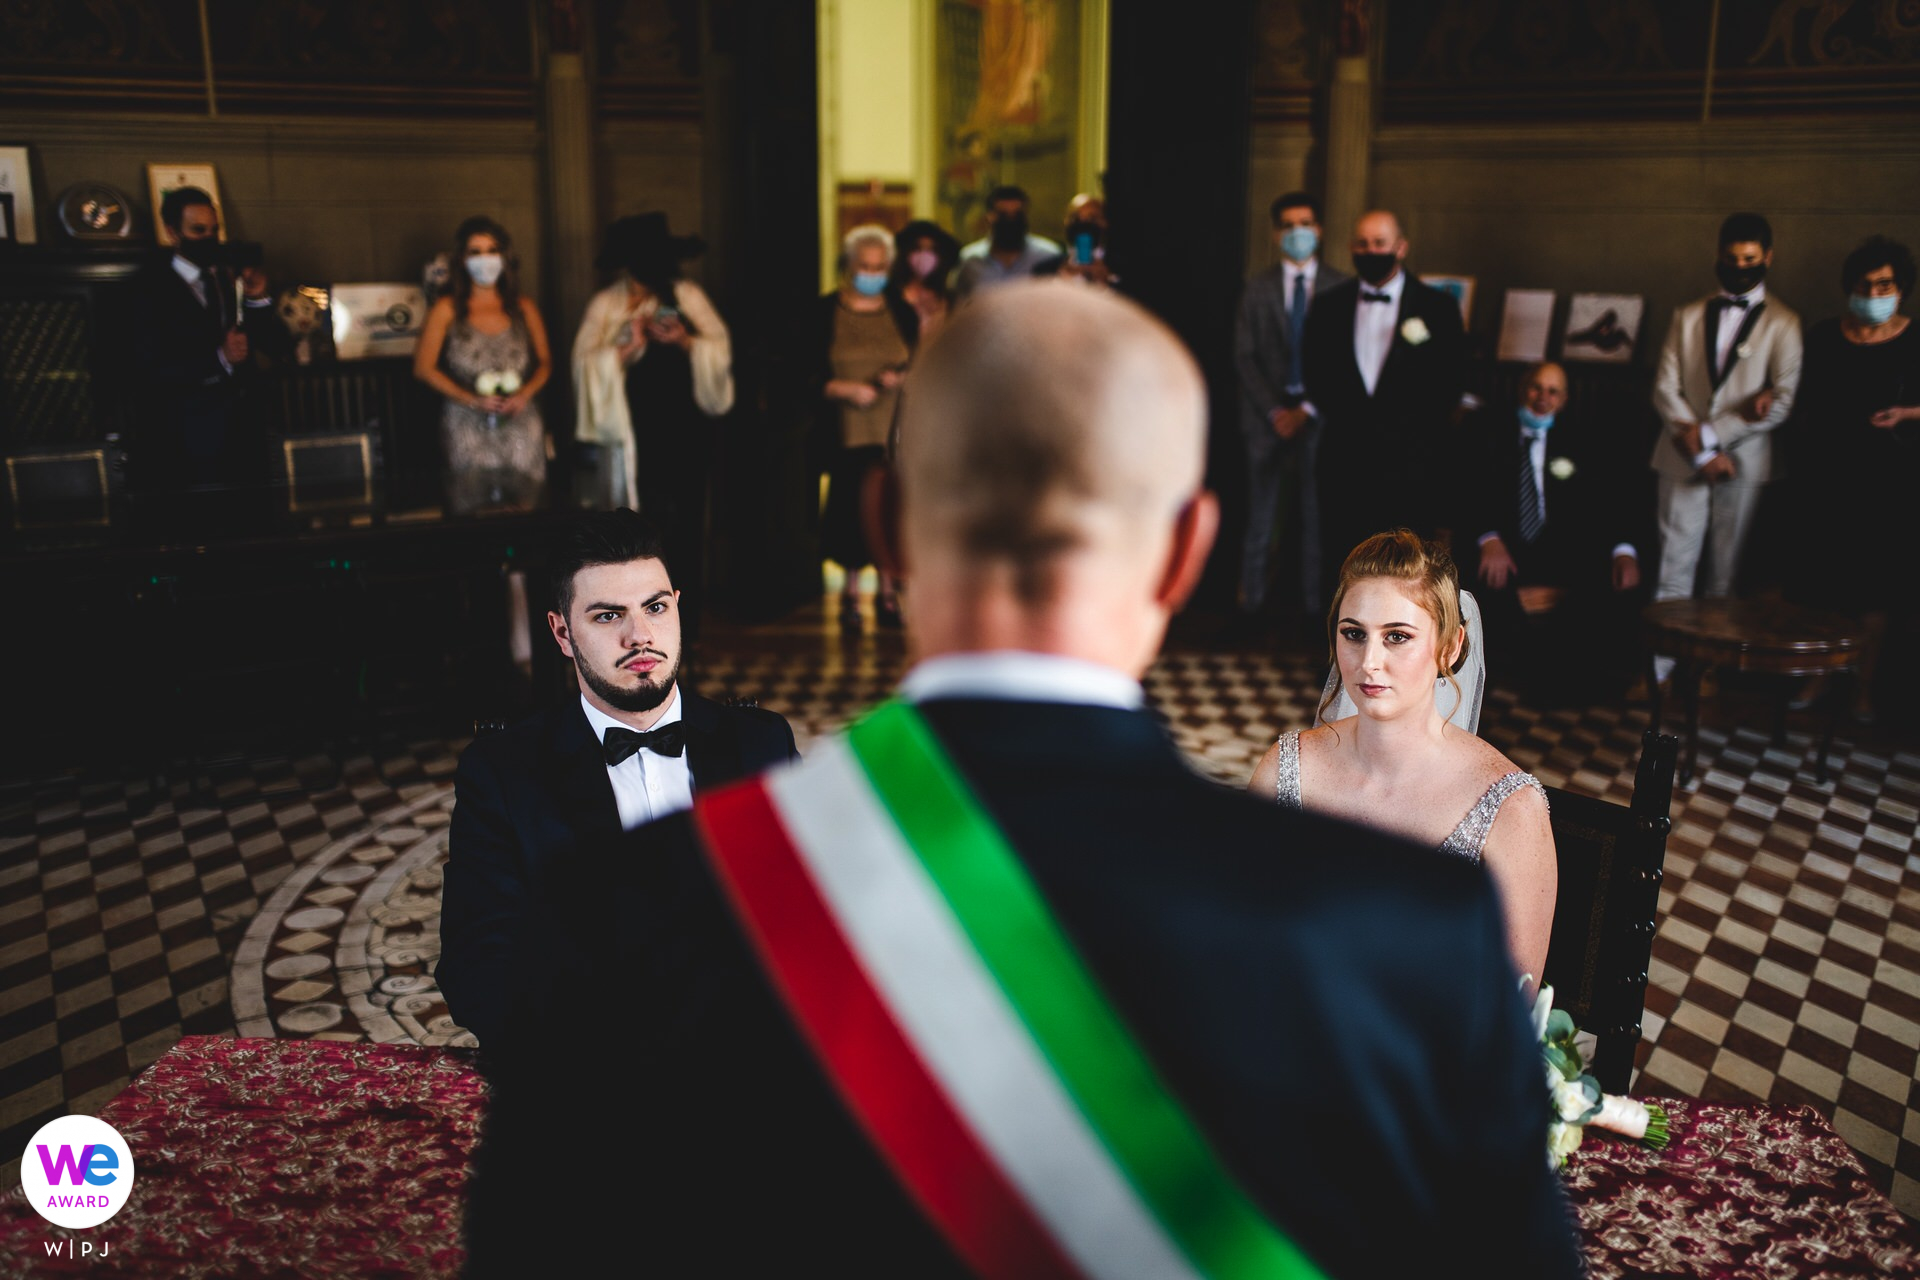 Florence Intimate Wedding Photo - Town Hall of Borgo San Lorenzo | Here we see the couple seated in the town hall